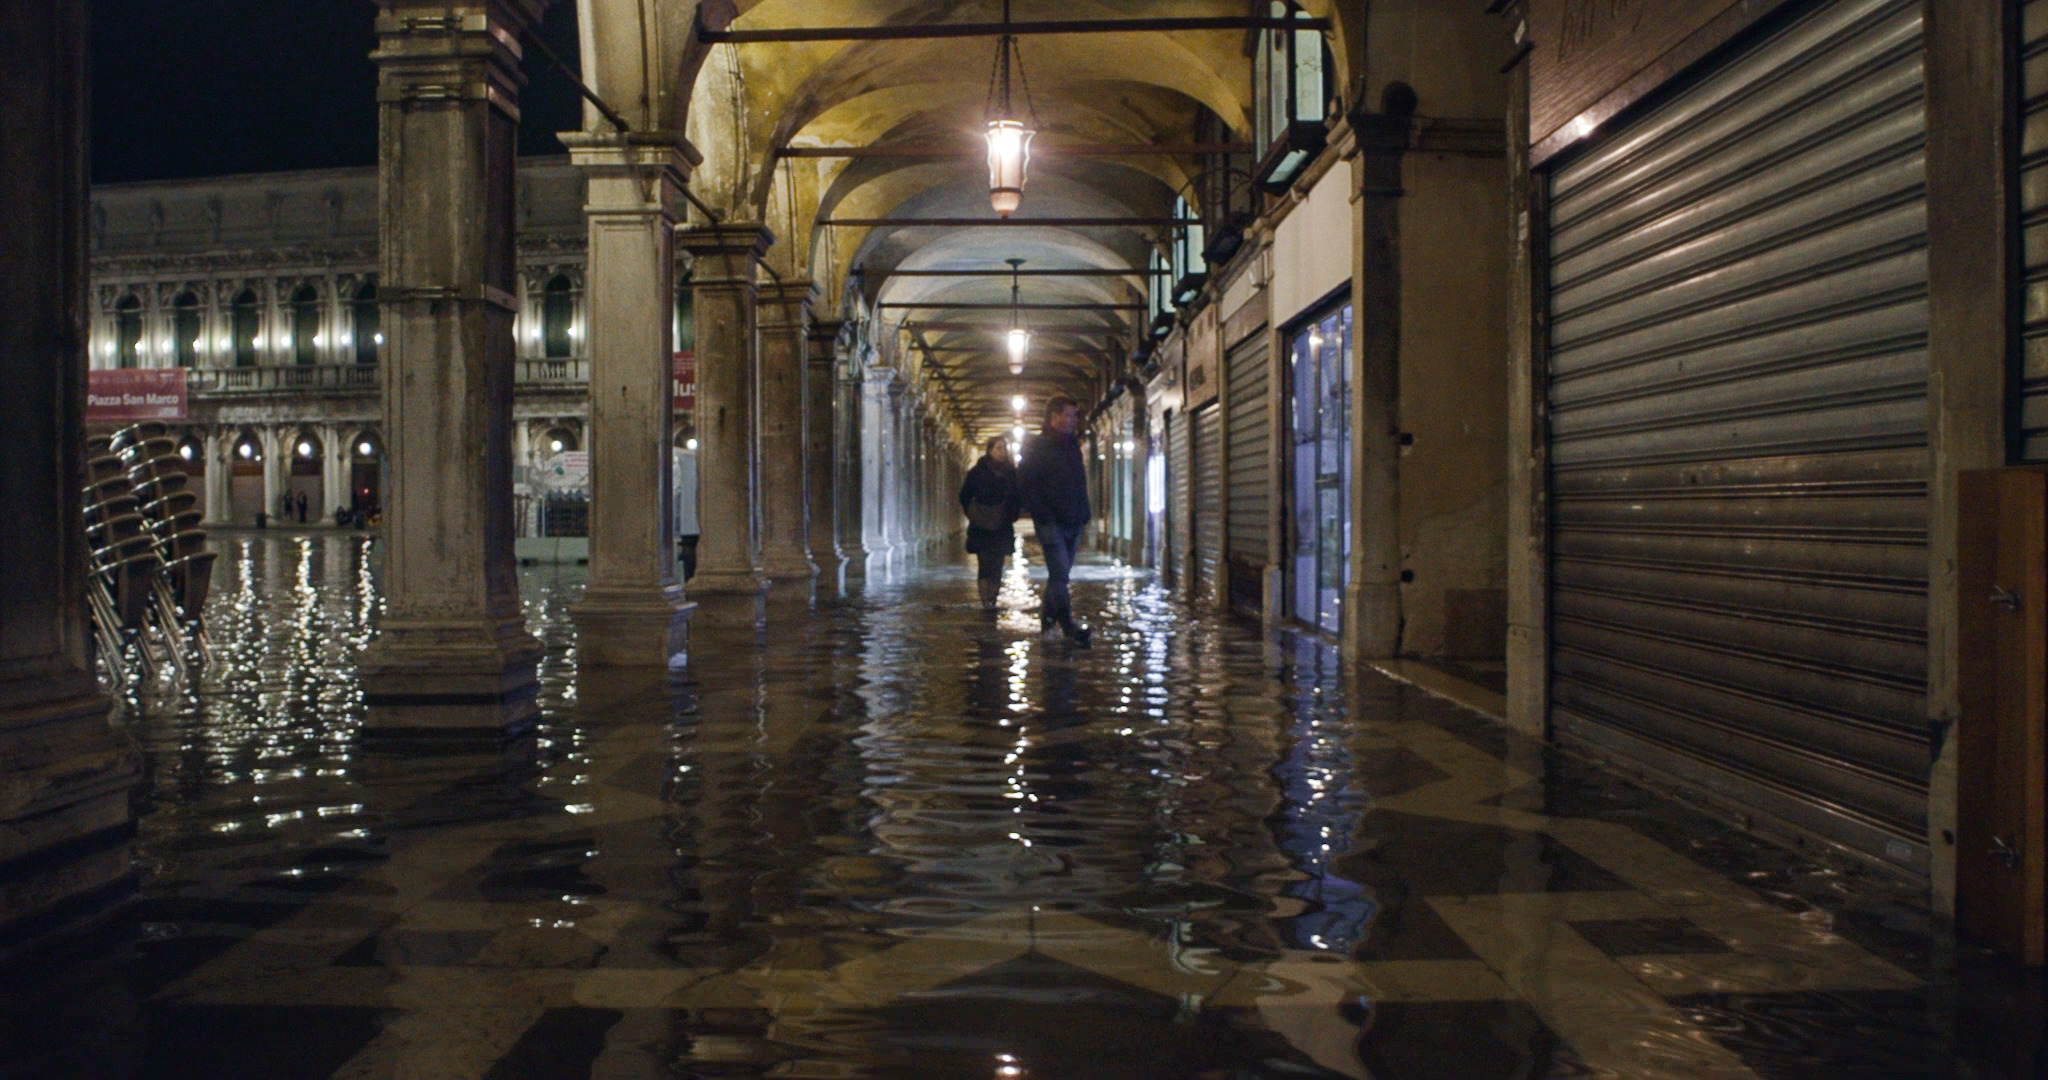 Acqua alta a Venezia. Film Still